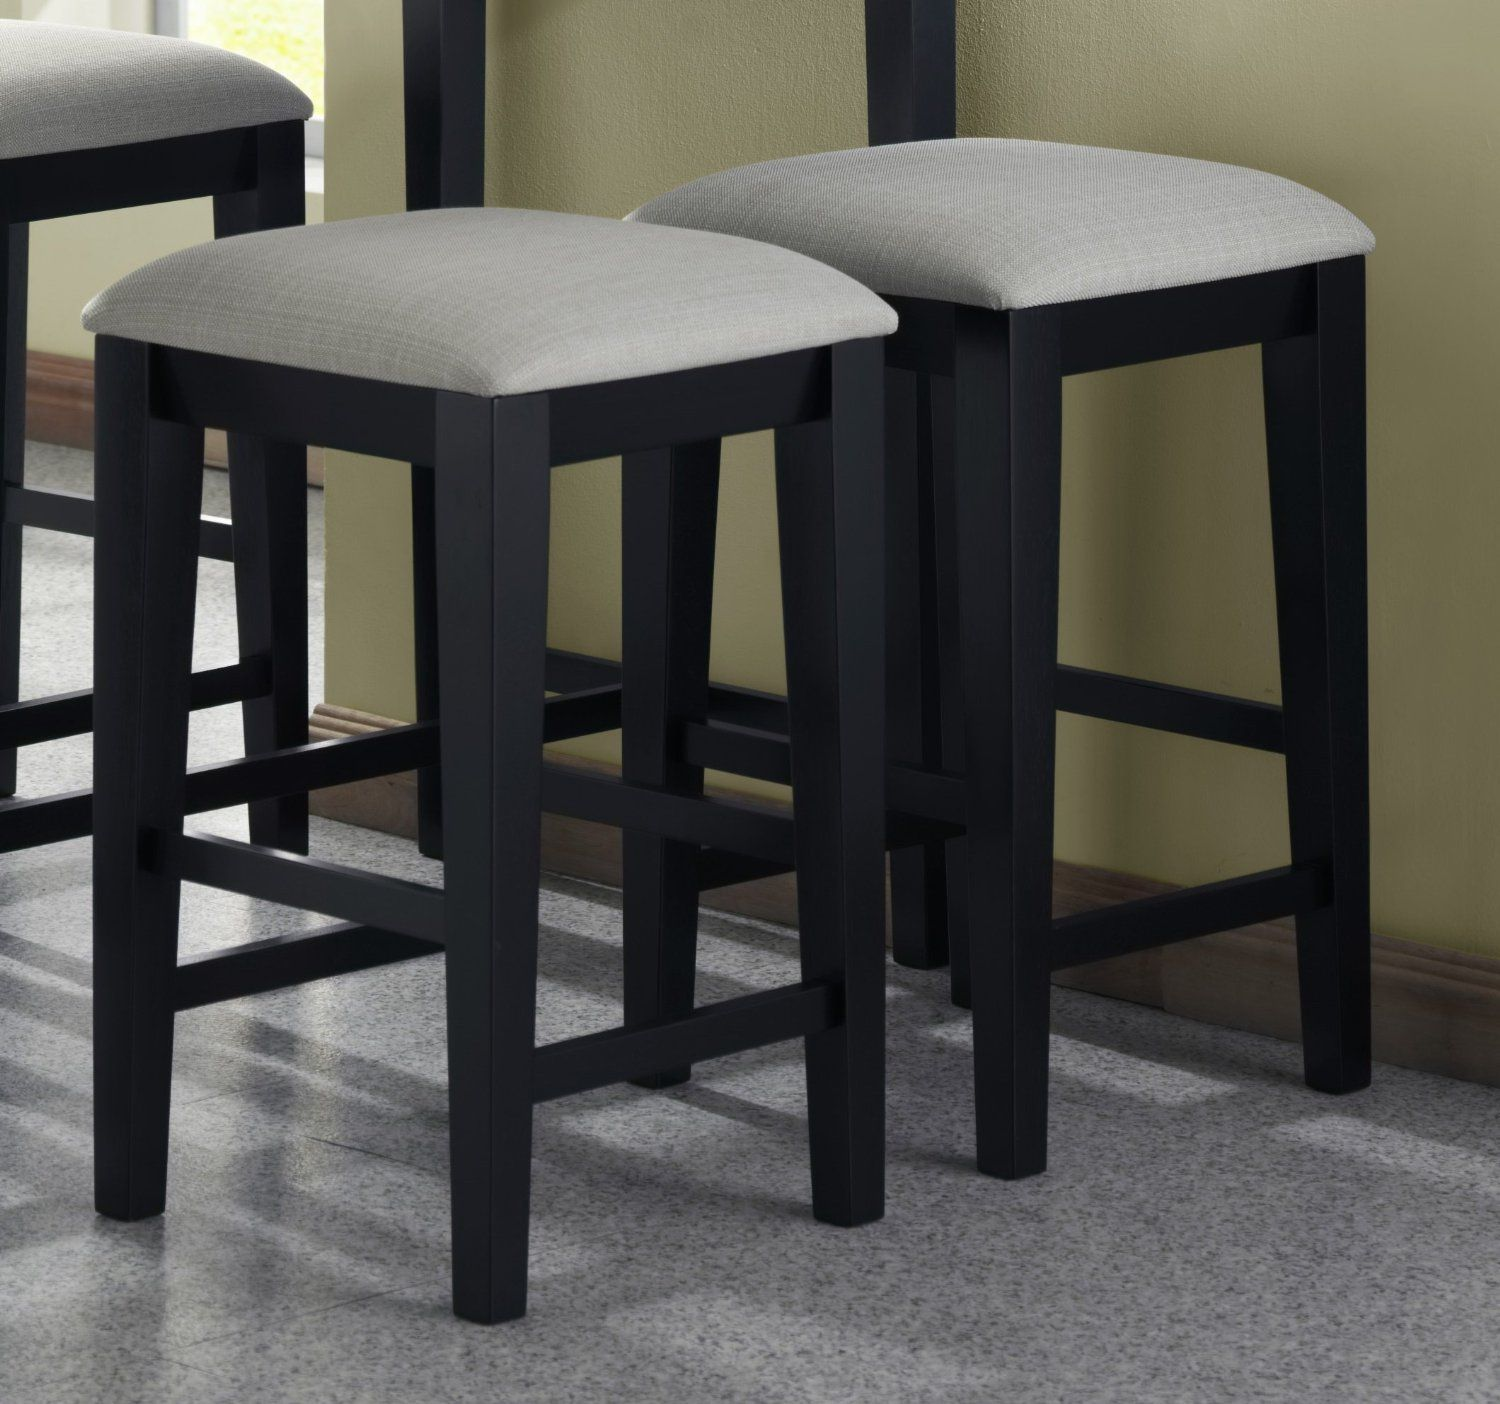 70 27 Inch Bar Stools Contemporary Modern Furniture Check More At